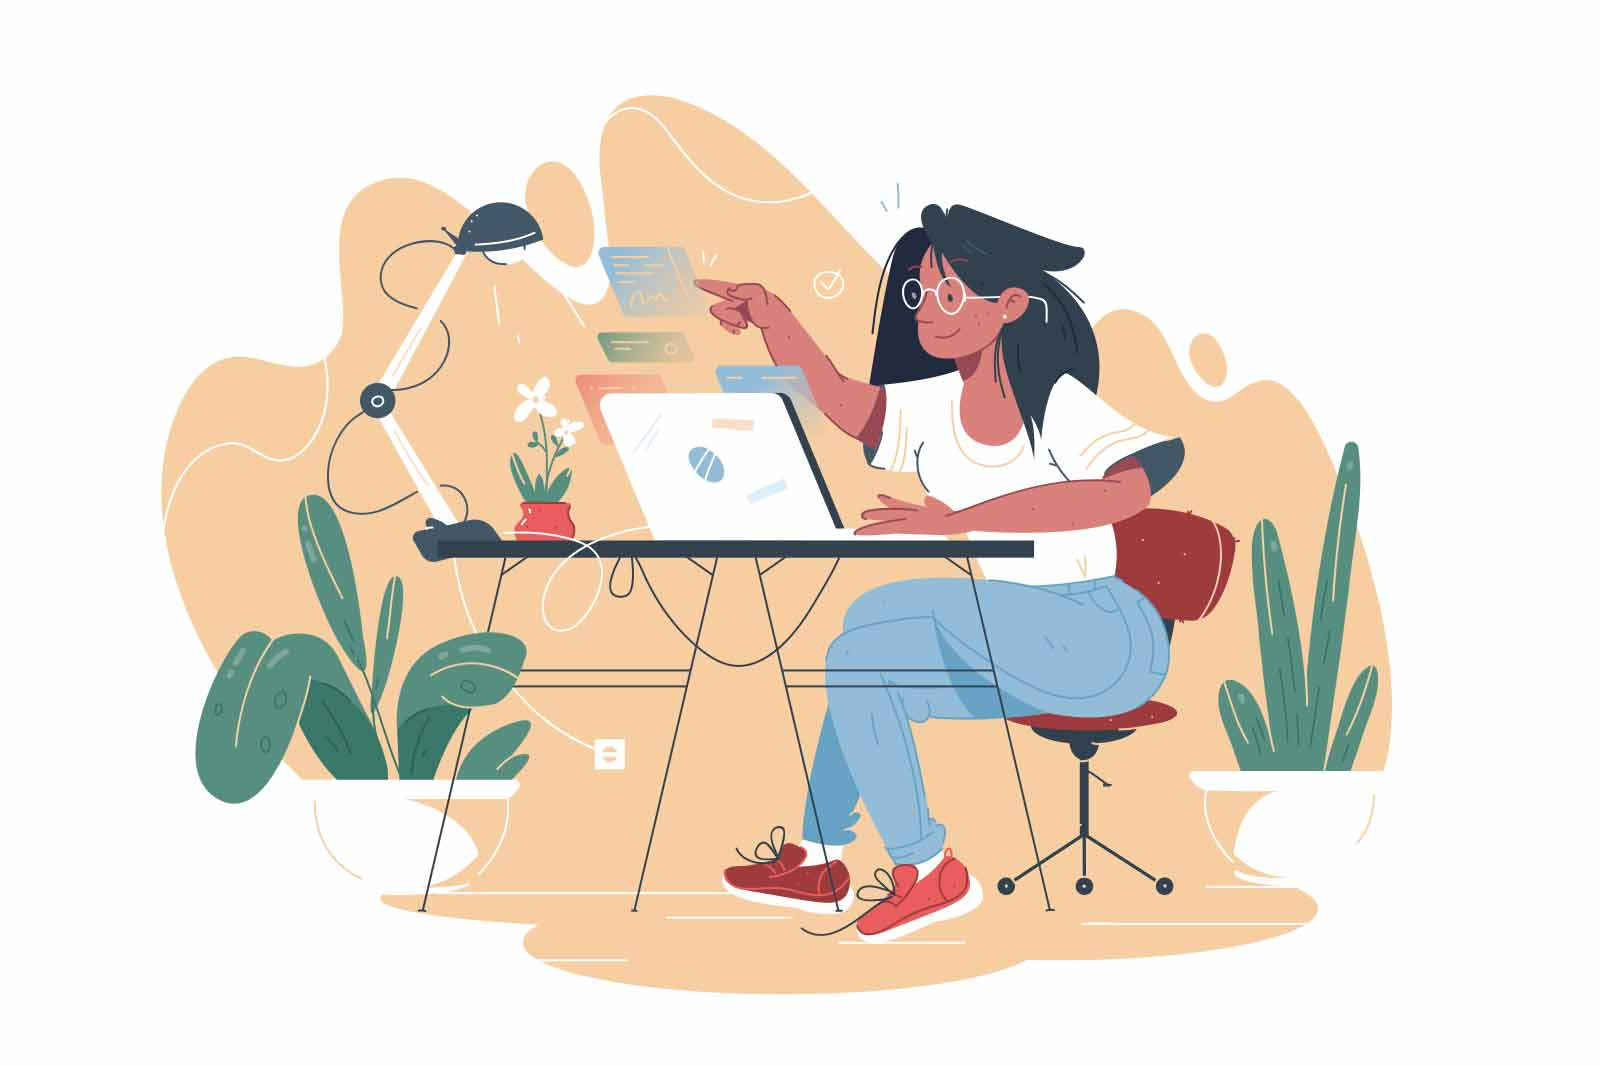 Remote control modern technology vector illustration. Woman using interactive interface for remote control of working process flat style concept